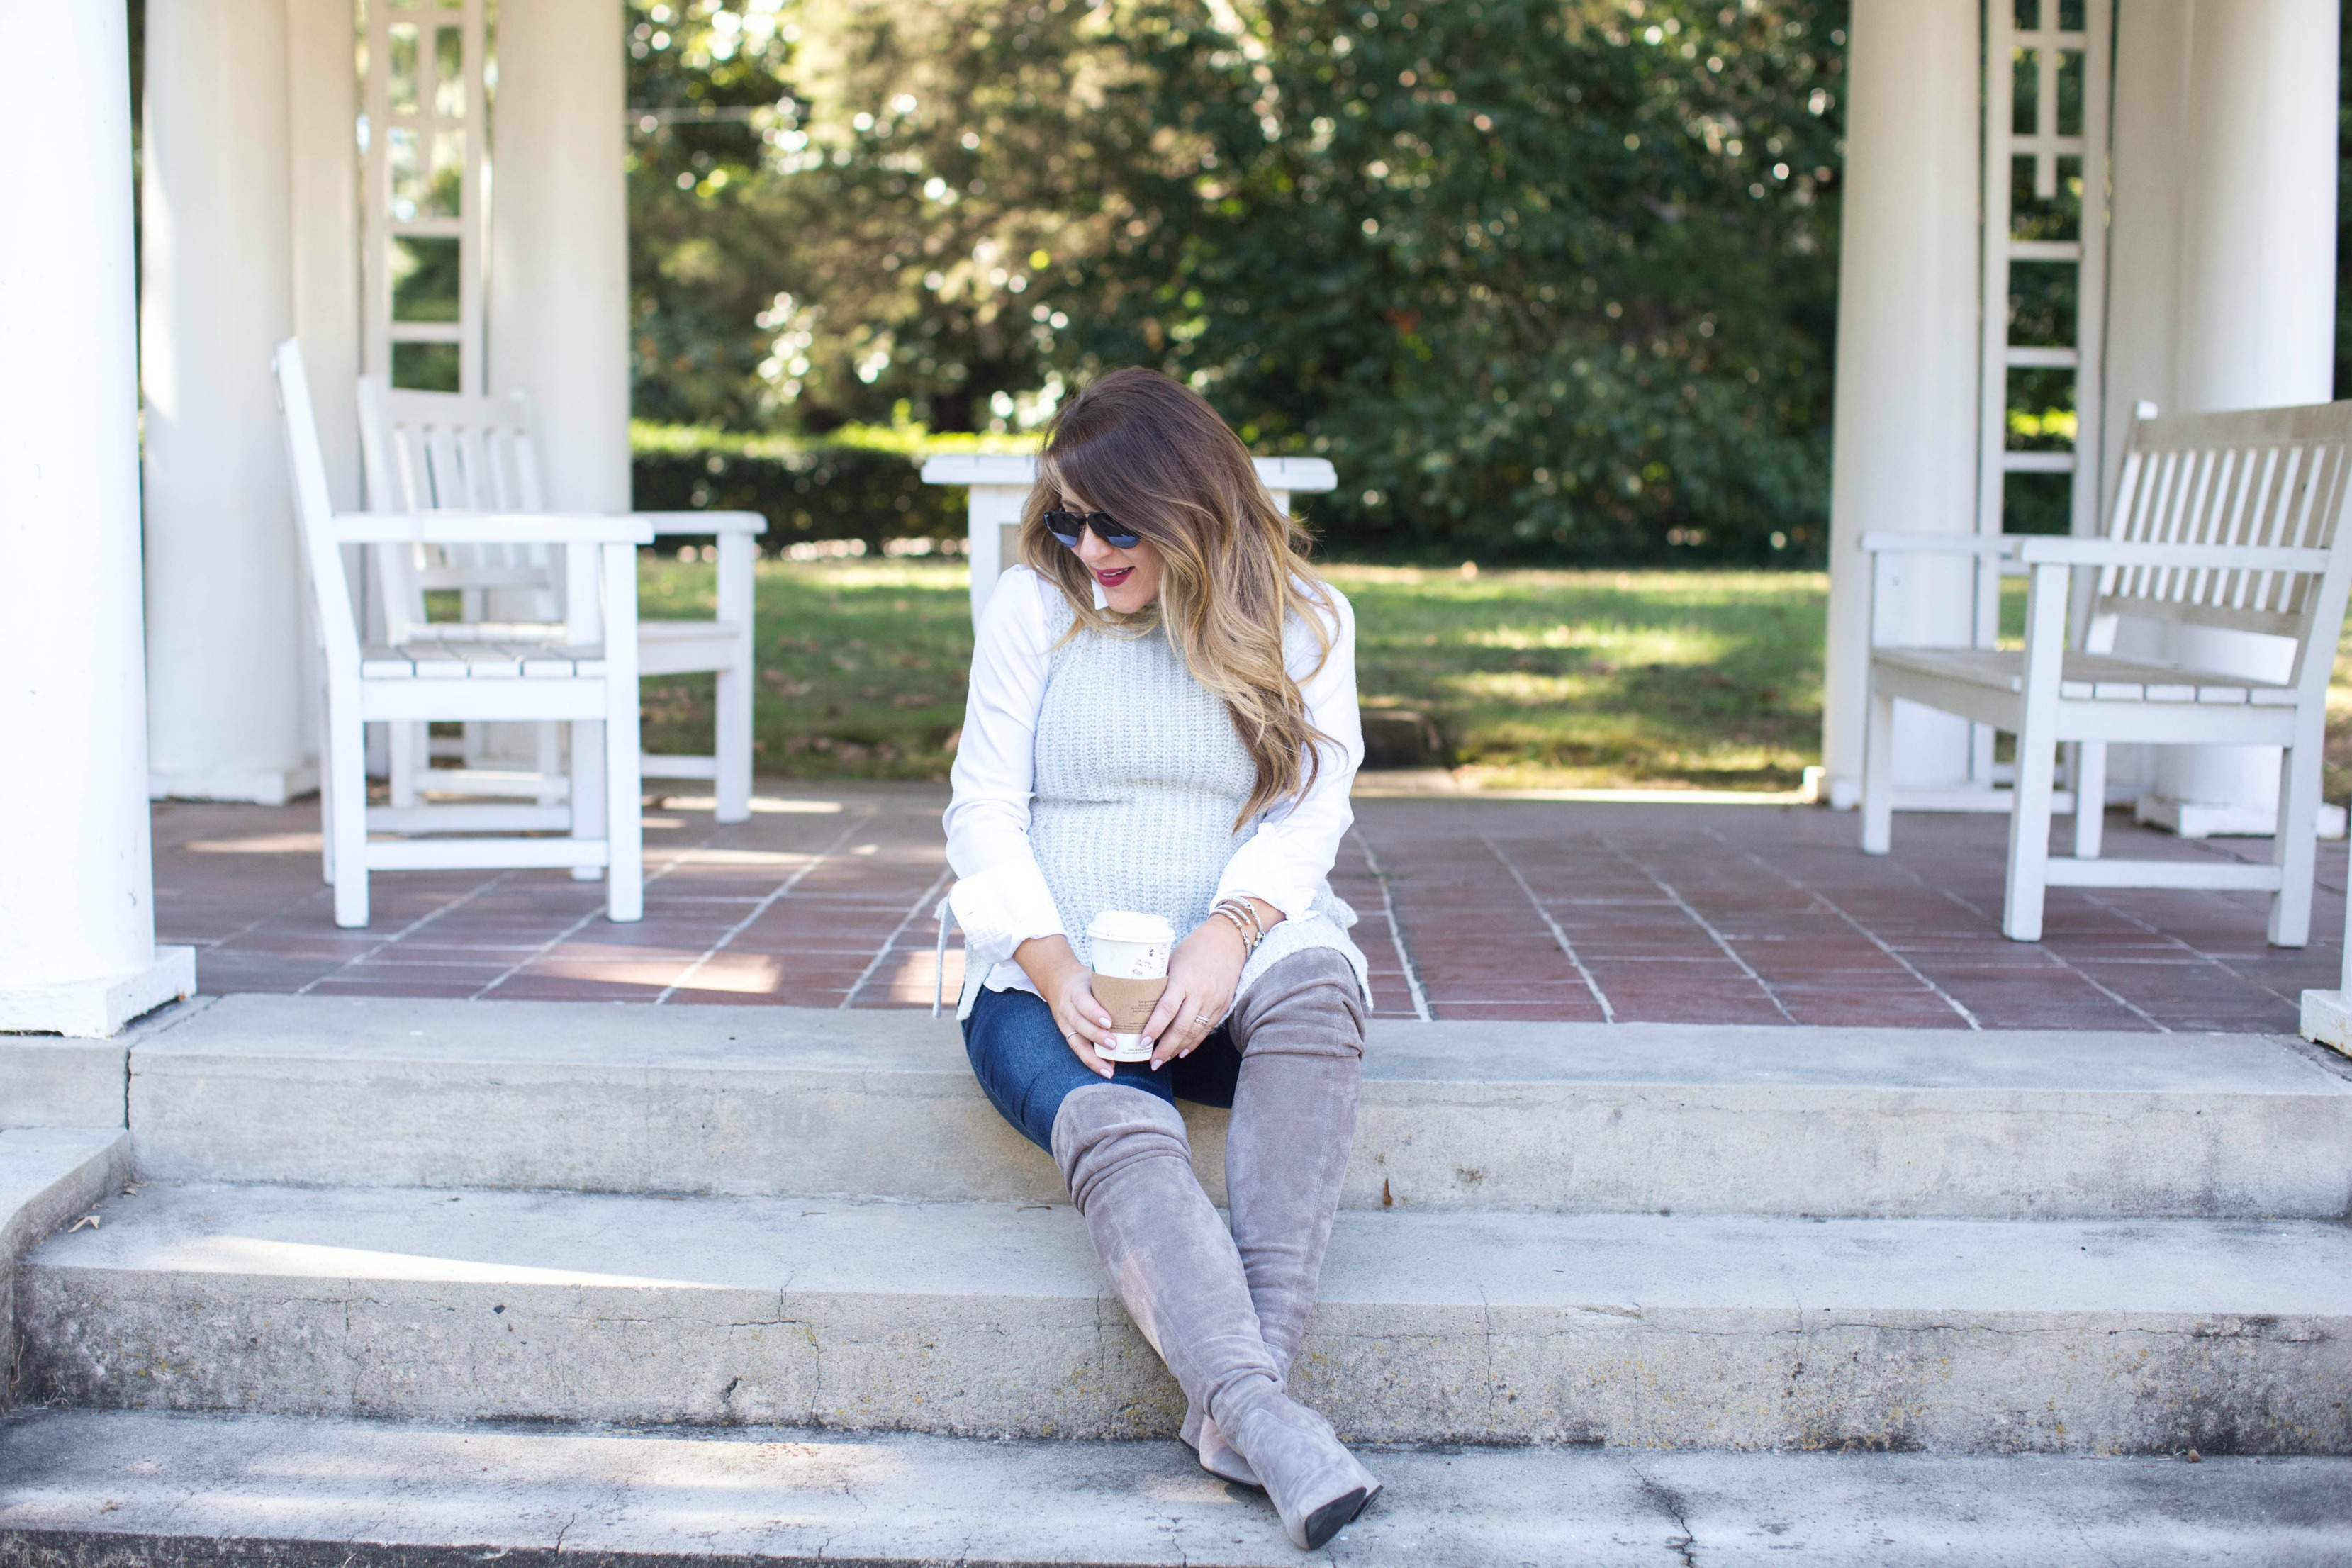 Gray Layers - Fall Fashion: Gray Layers by North Carolina fashion blogger Coffee Beans and Bobby Pins